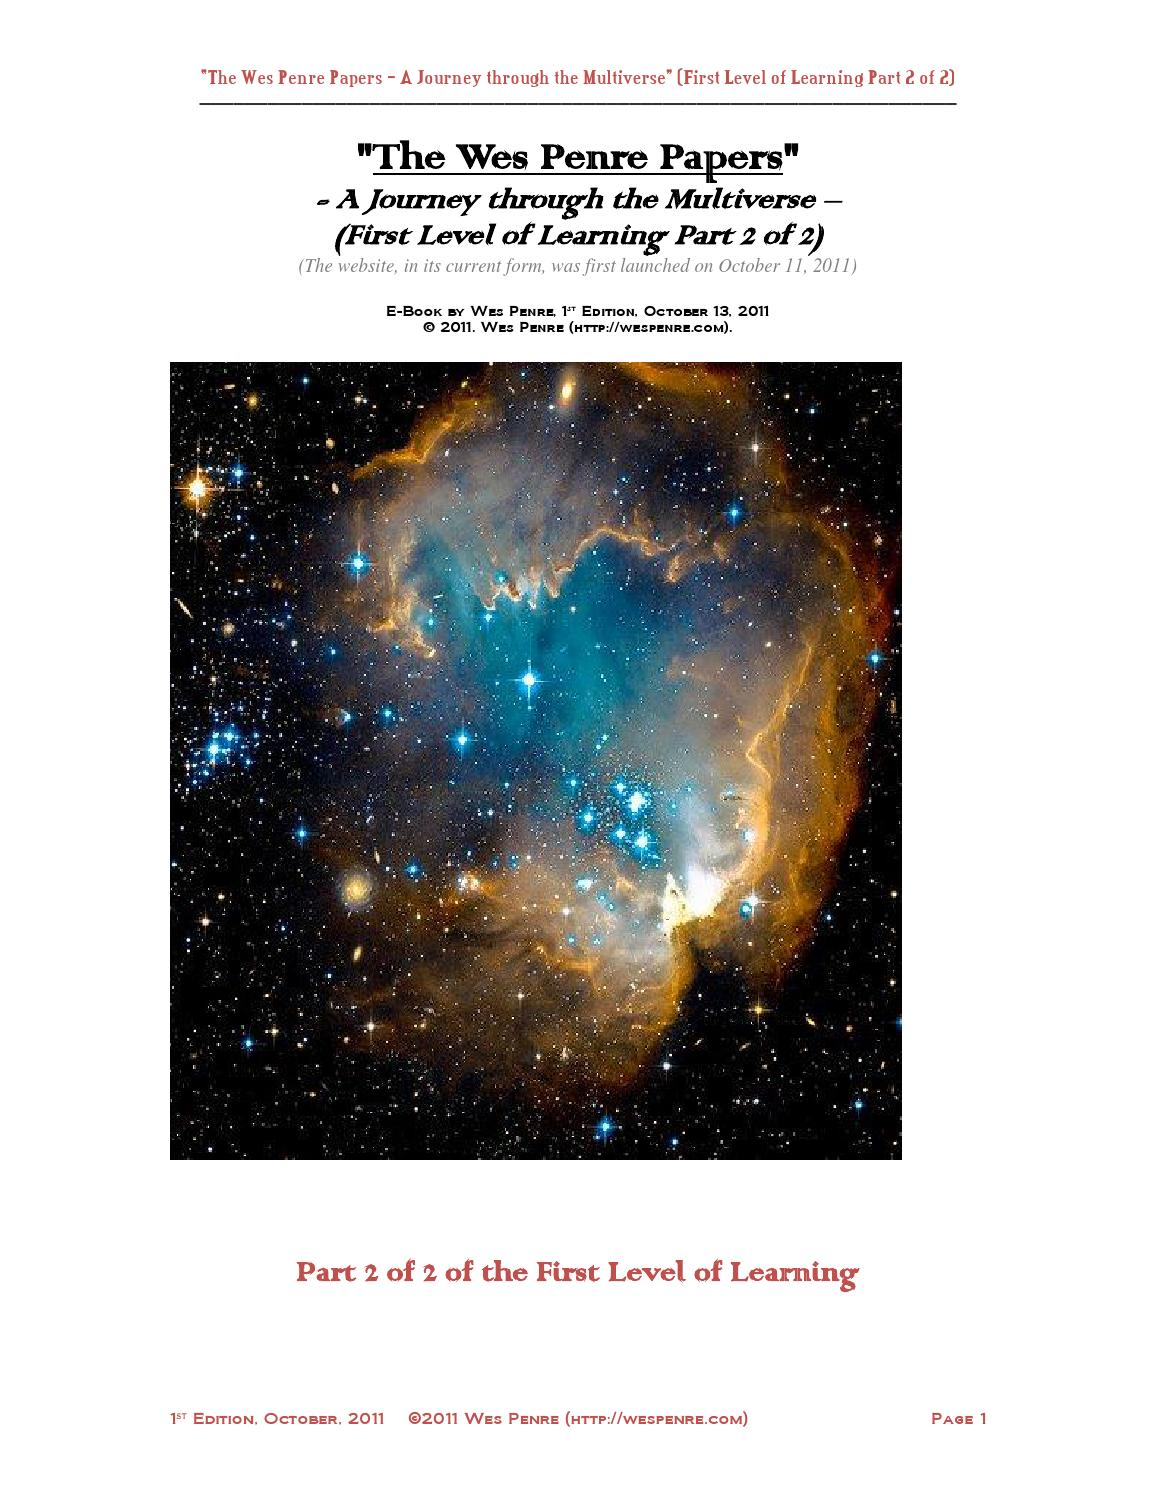 The Wes Penre Papers--First Level of Learning Part 2 by Wes